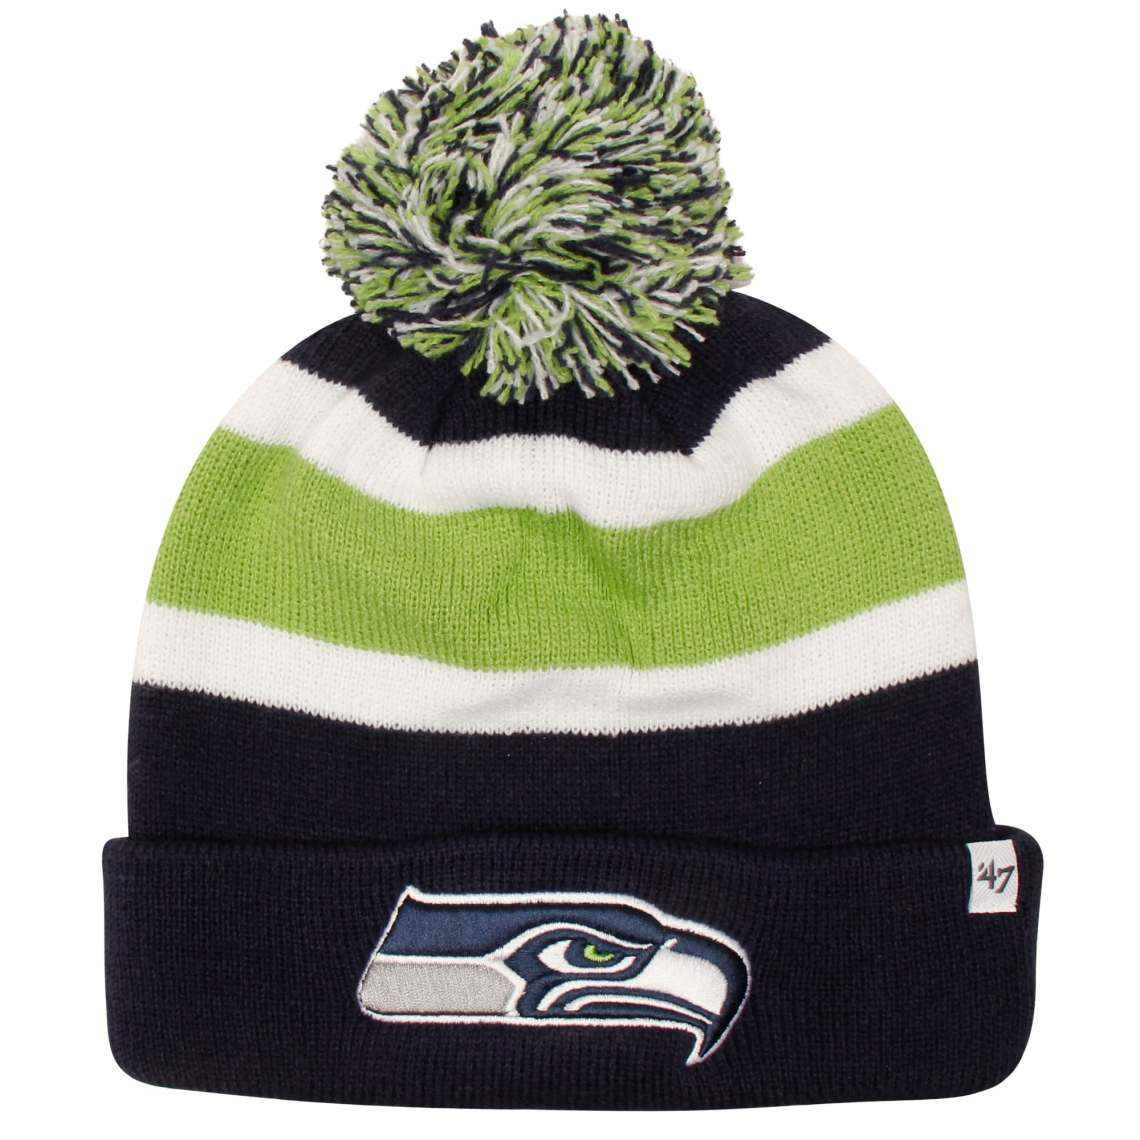 '47 Brand Seattle Seahawks Breakaway Knit Beanie - College Navy/Neon Green